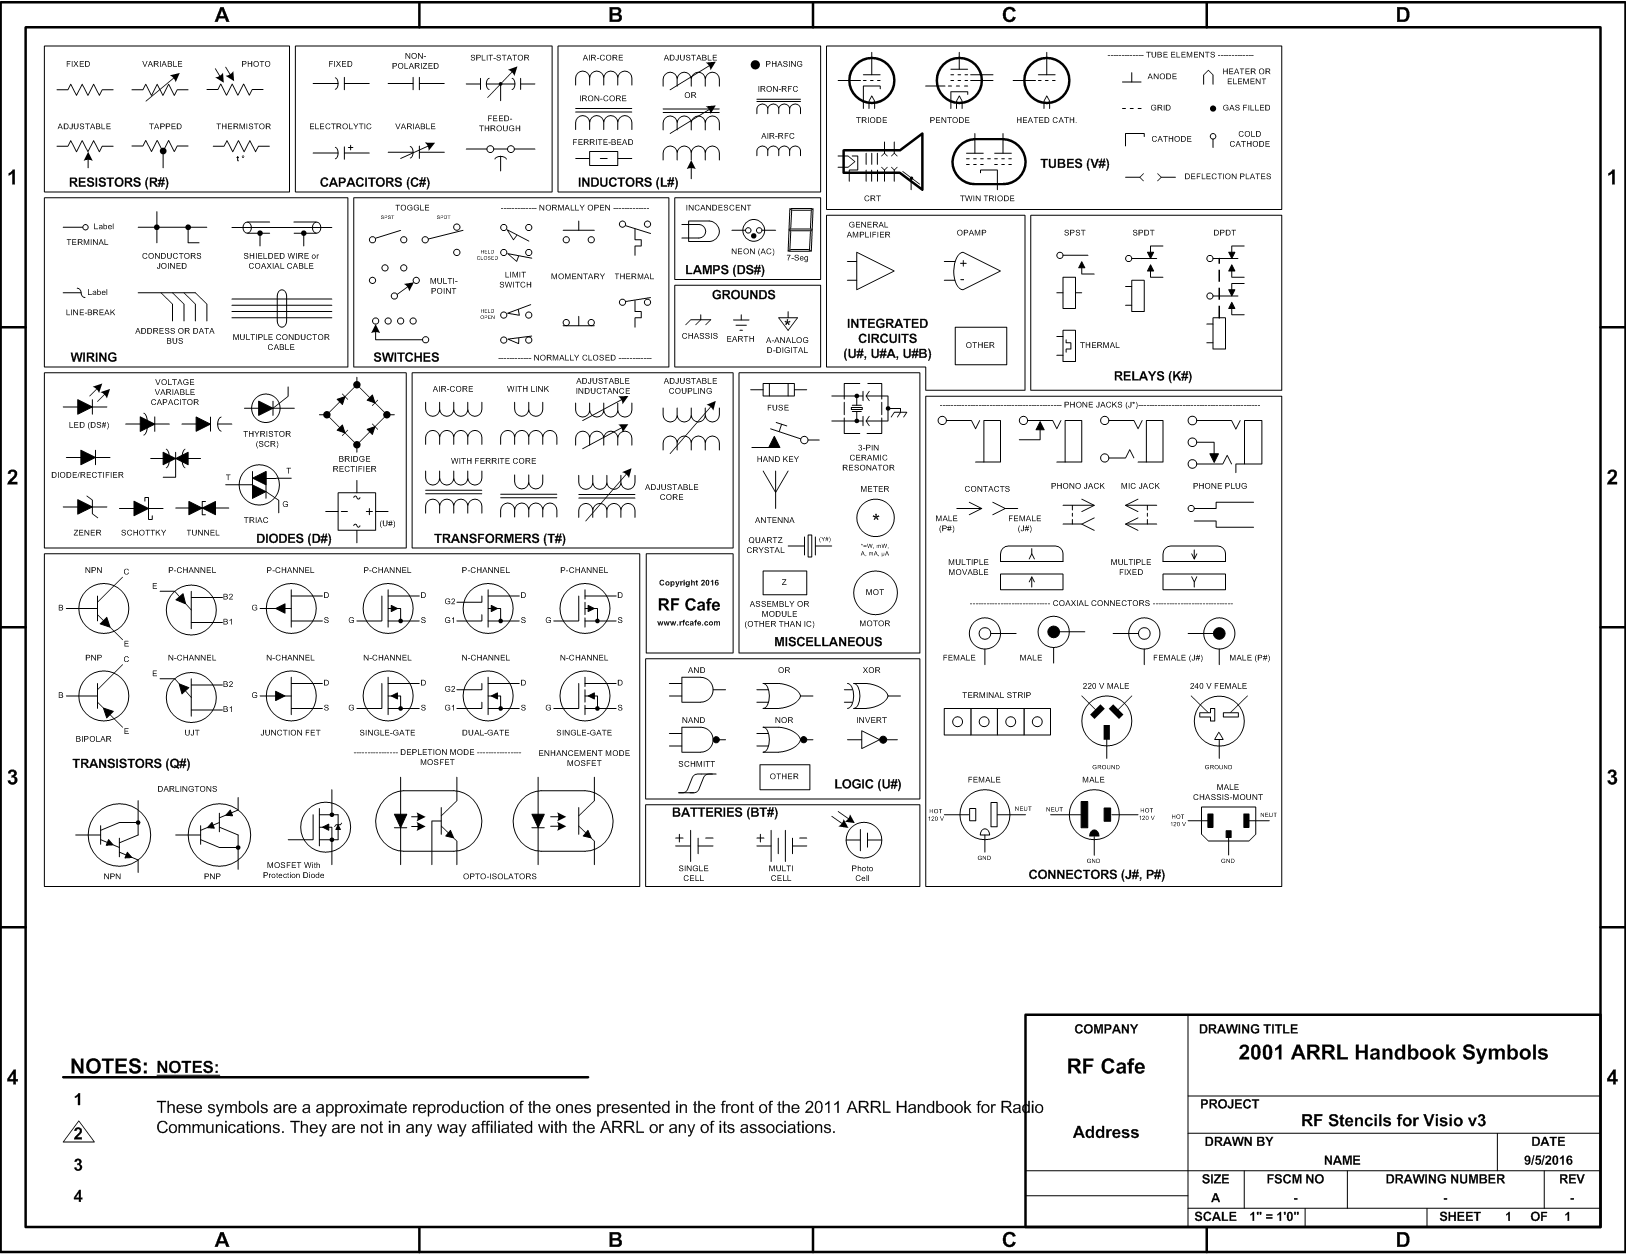 Visio Stencils on basic house wiring circuits